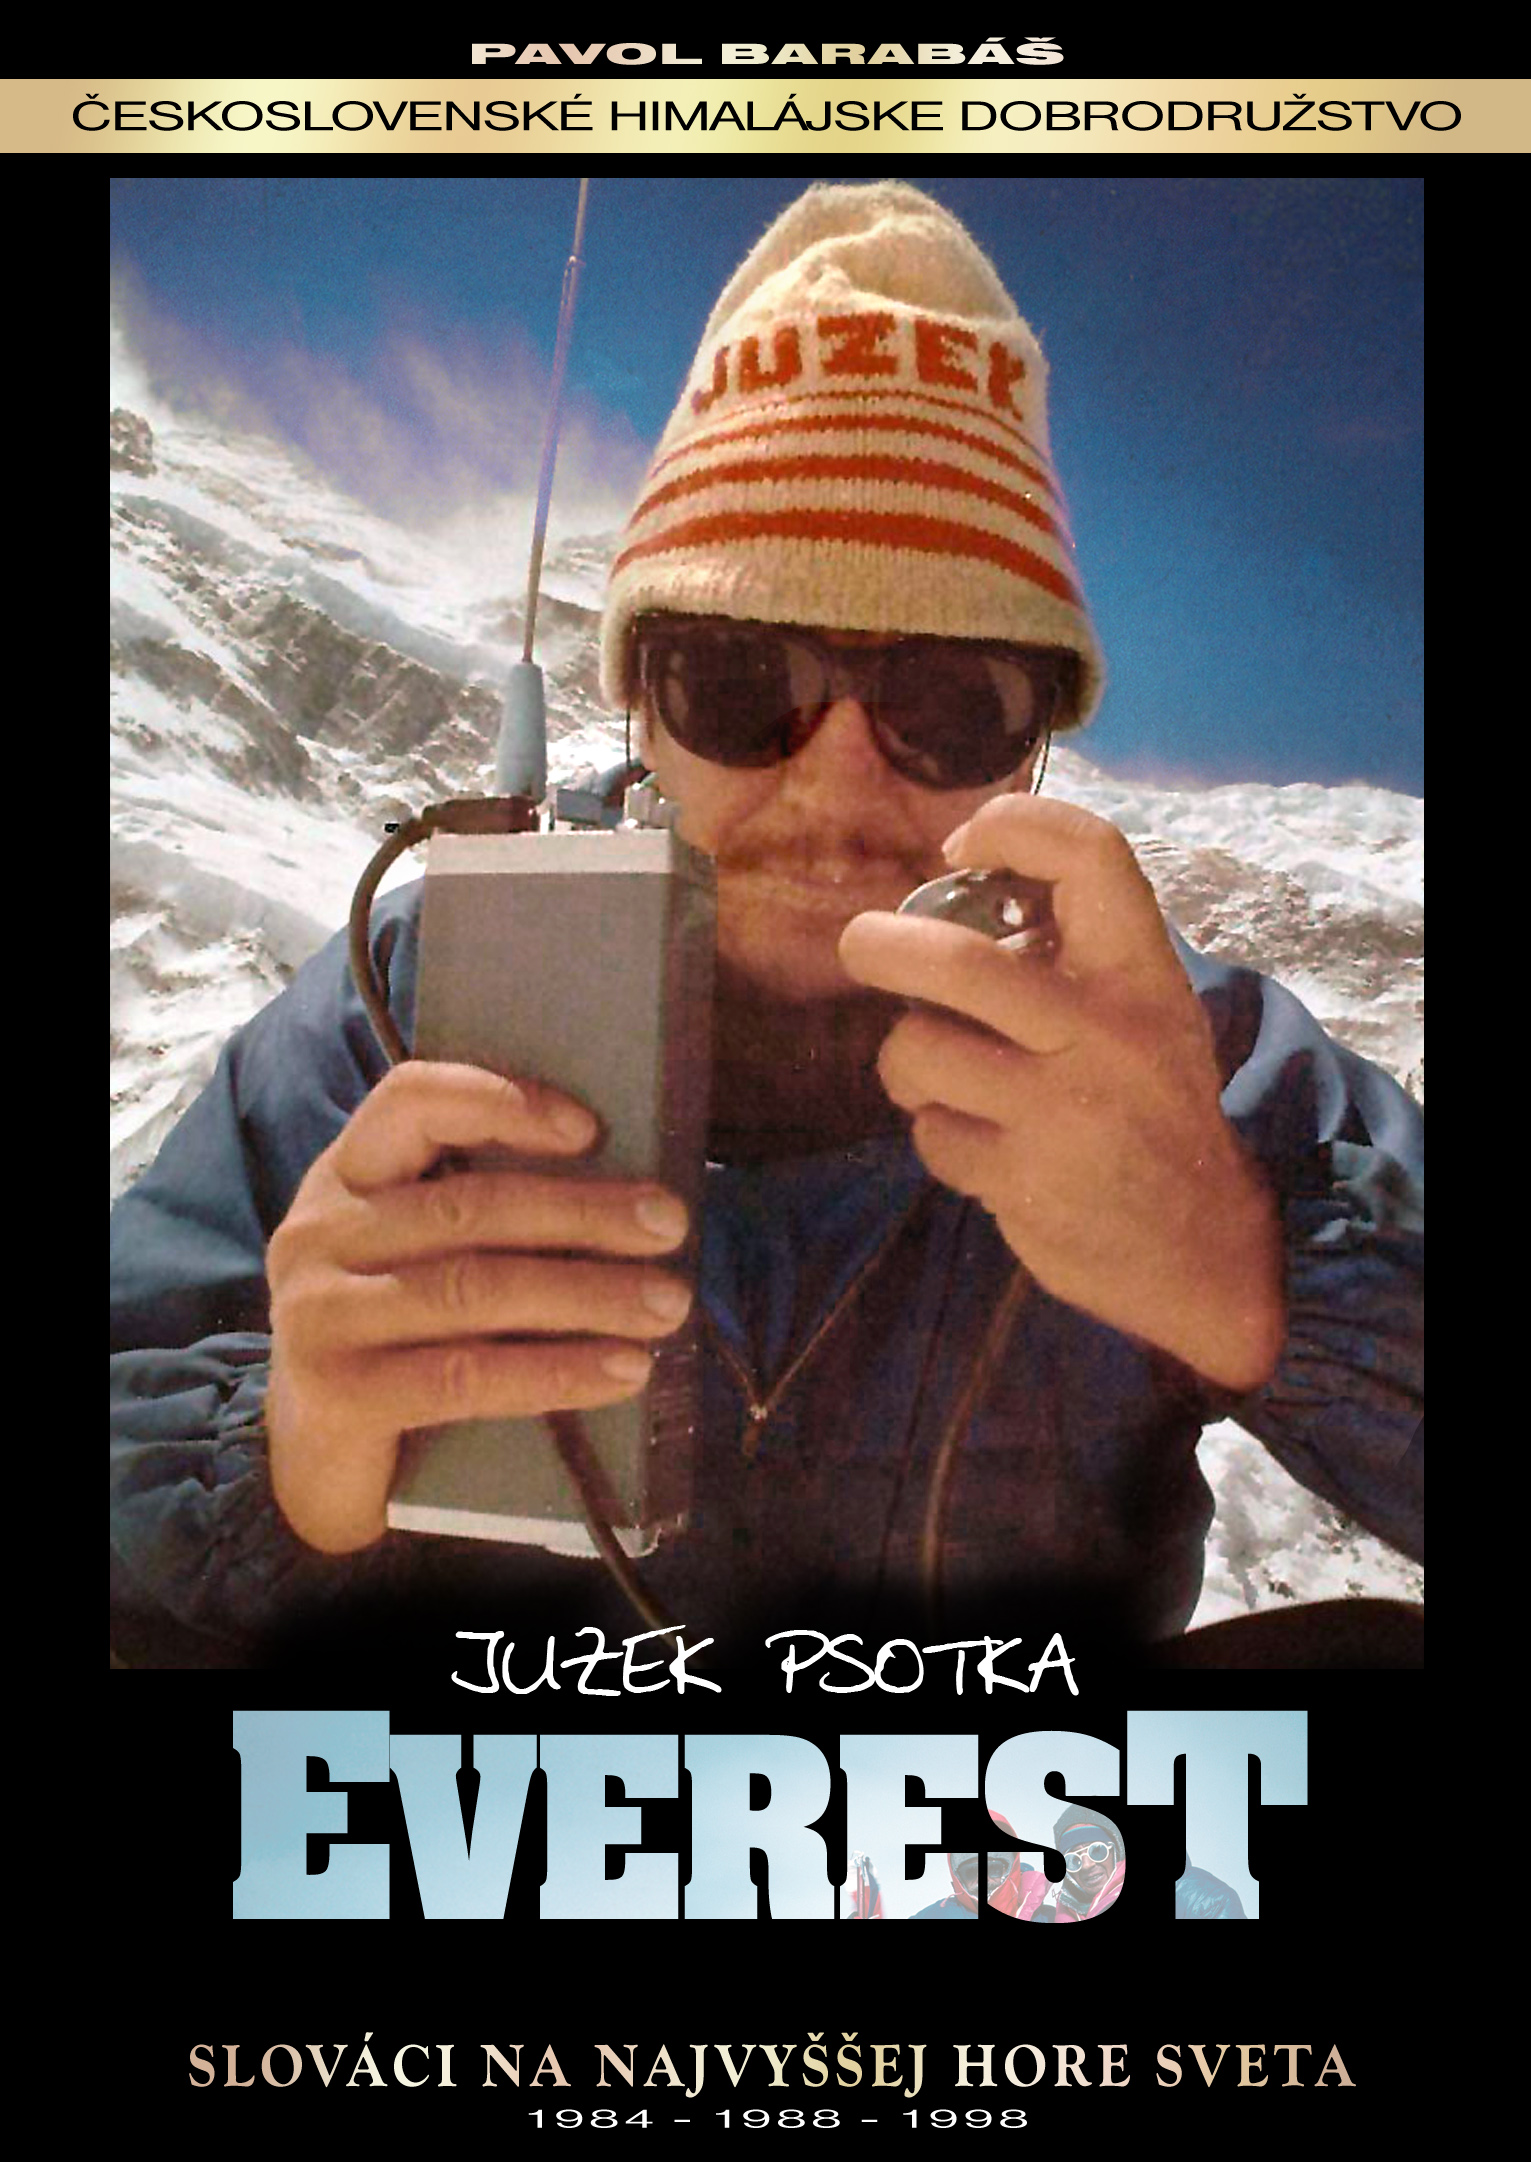 15. EVEREST - JUZEK PSOTKA